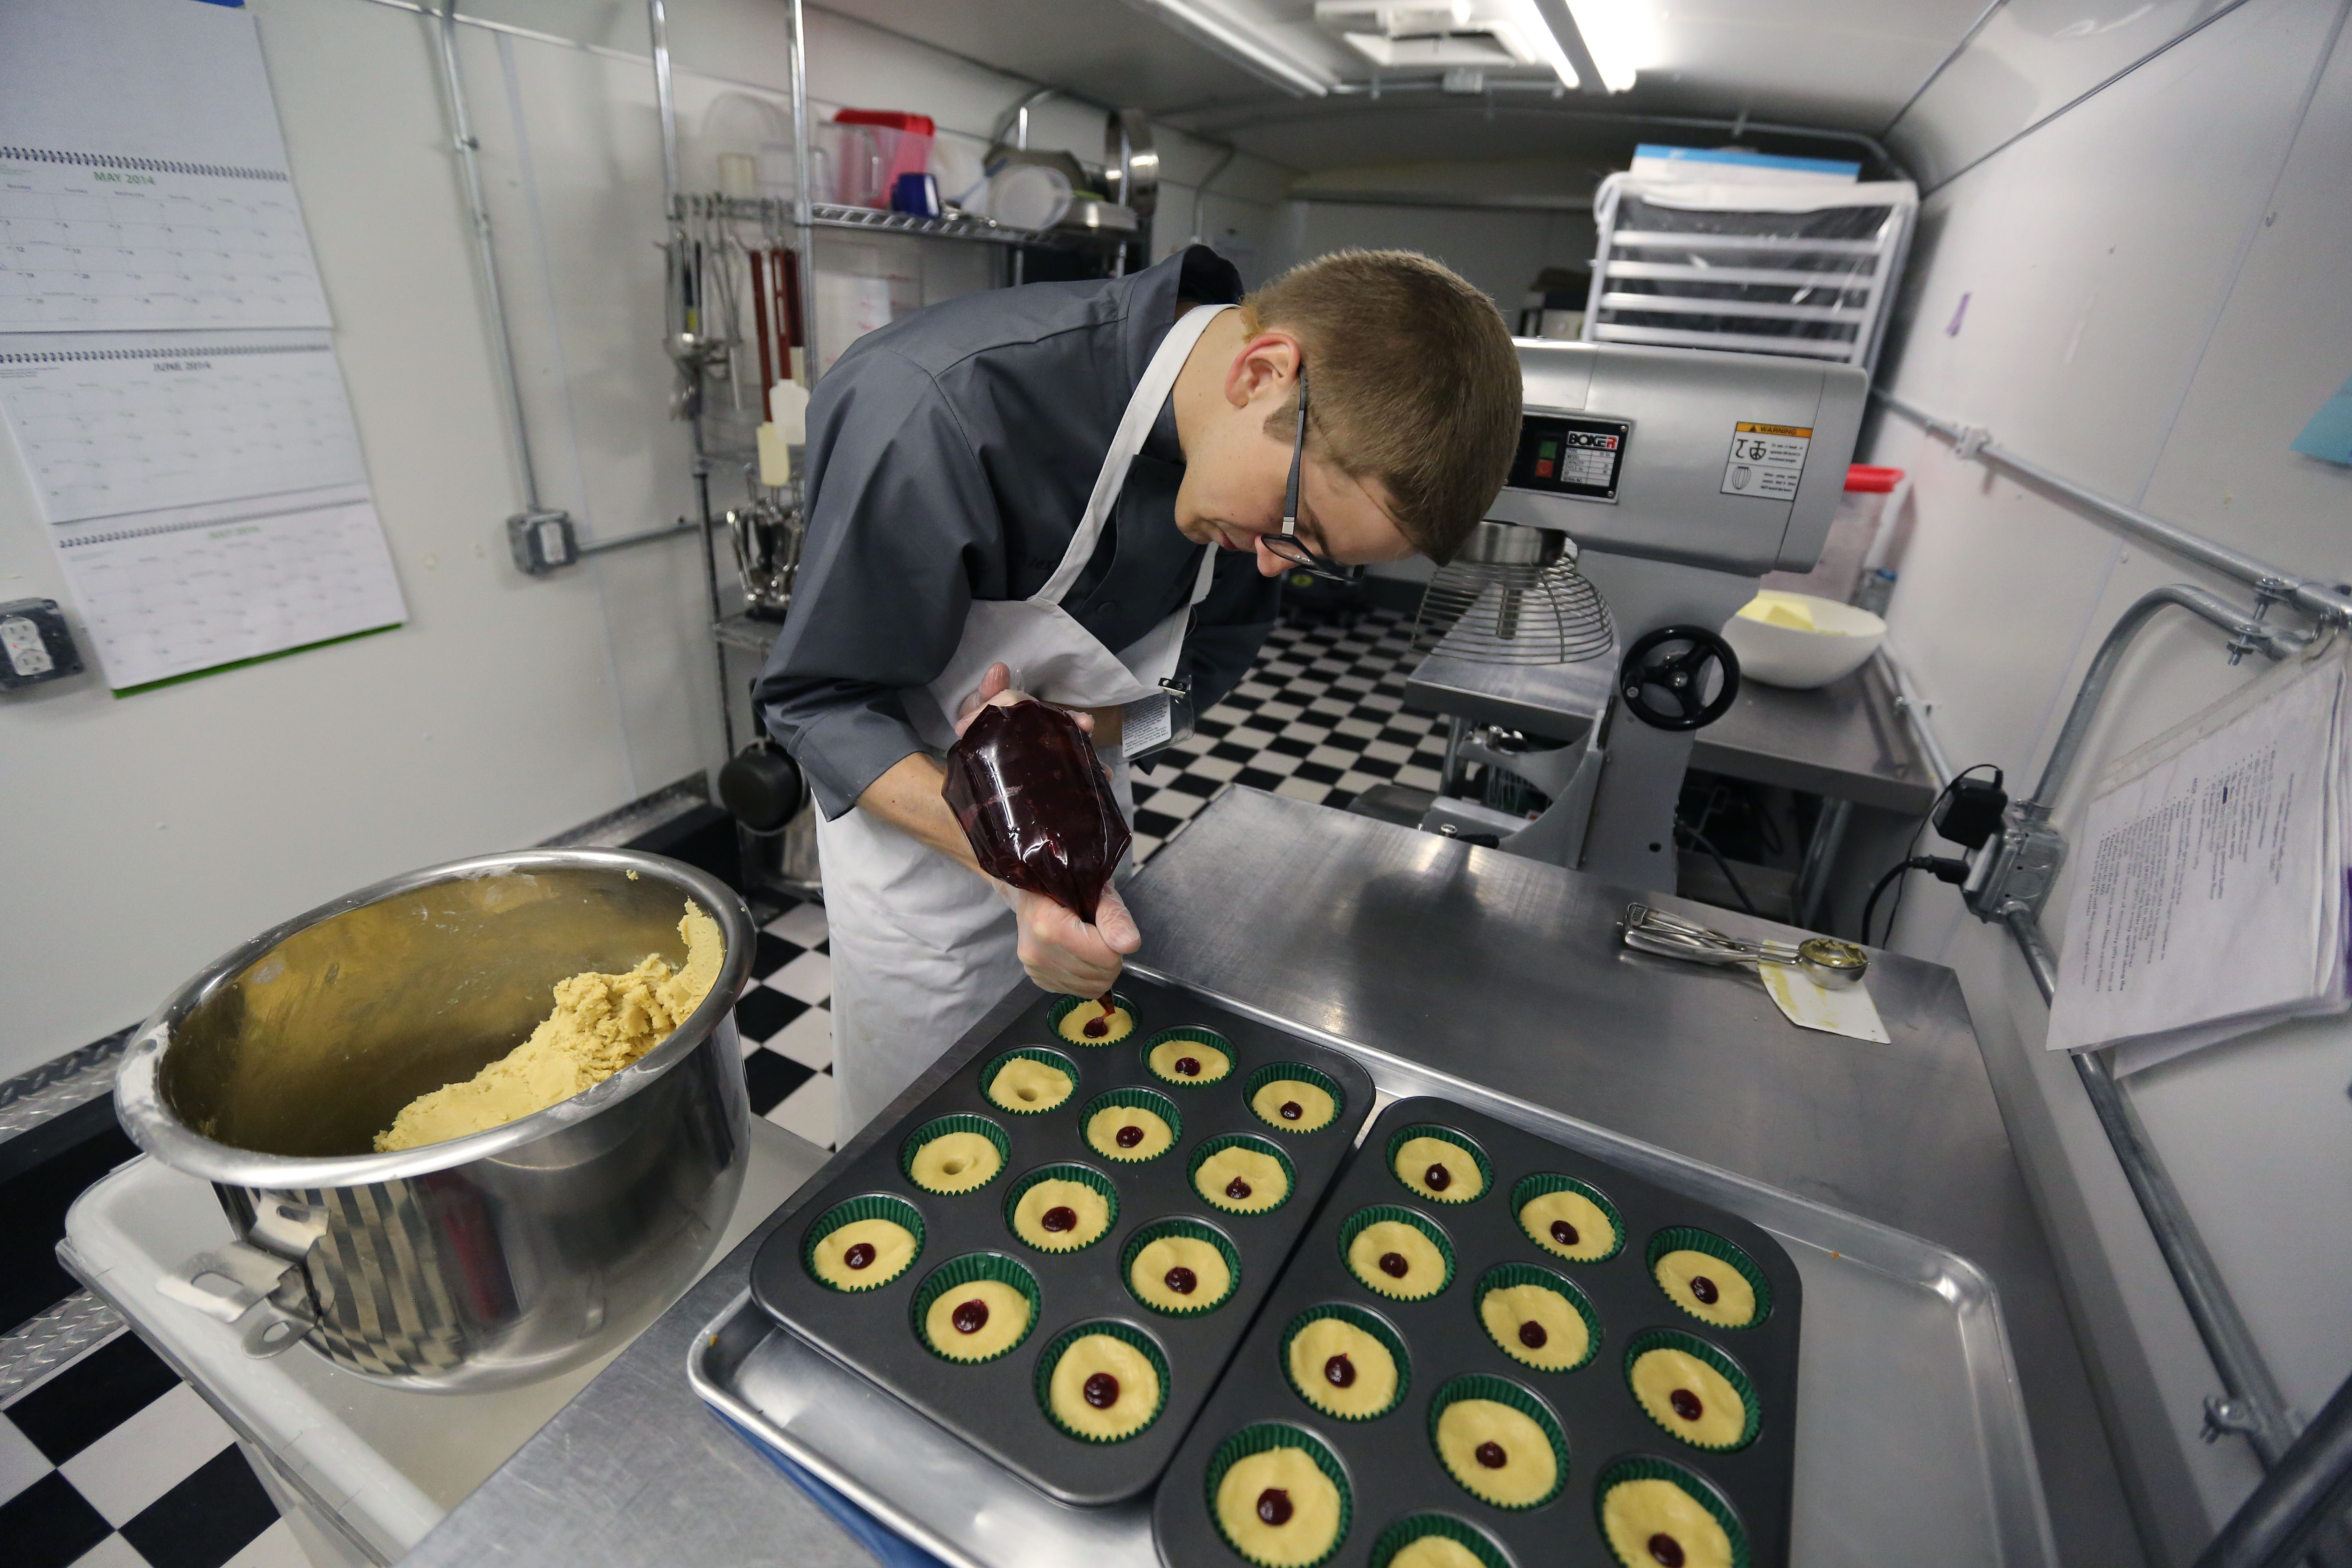 Time to get baking: Marijuana makes a splash in the food industry